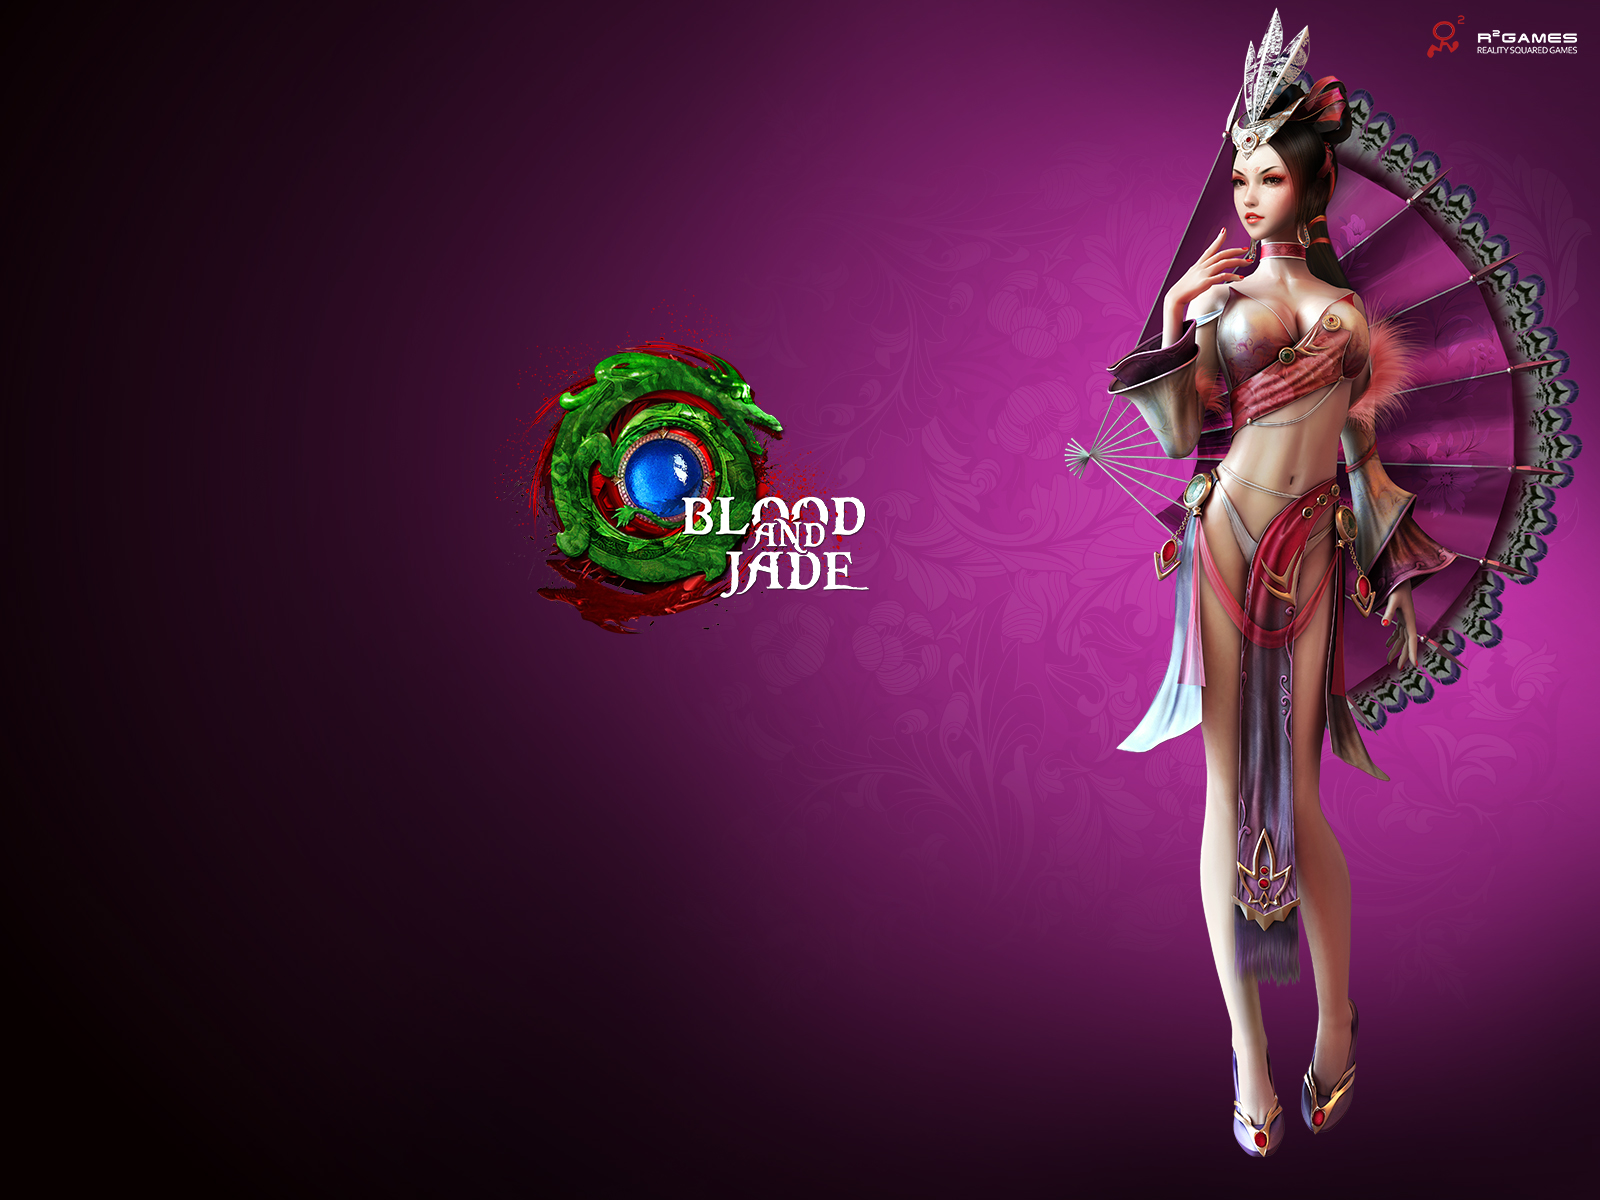 Blood and jade game porn erotic scenes